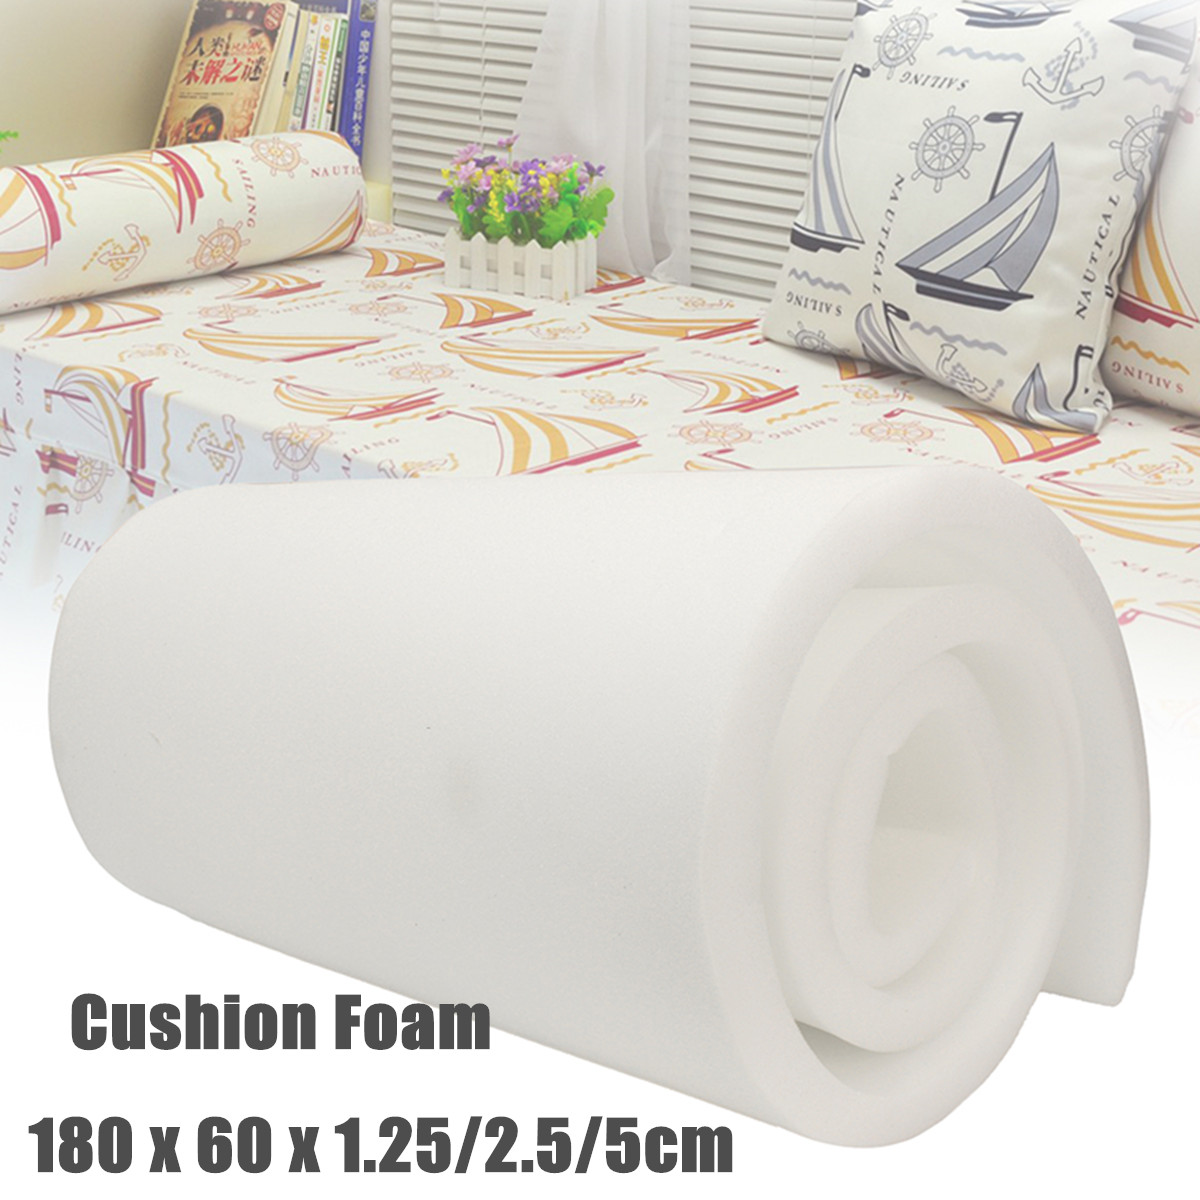 71x24 Inch High Density Foam Seat Cushion Replacement Upholstery